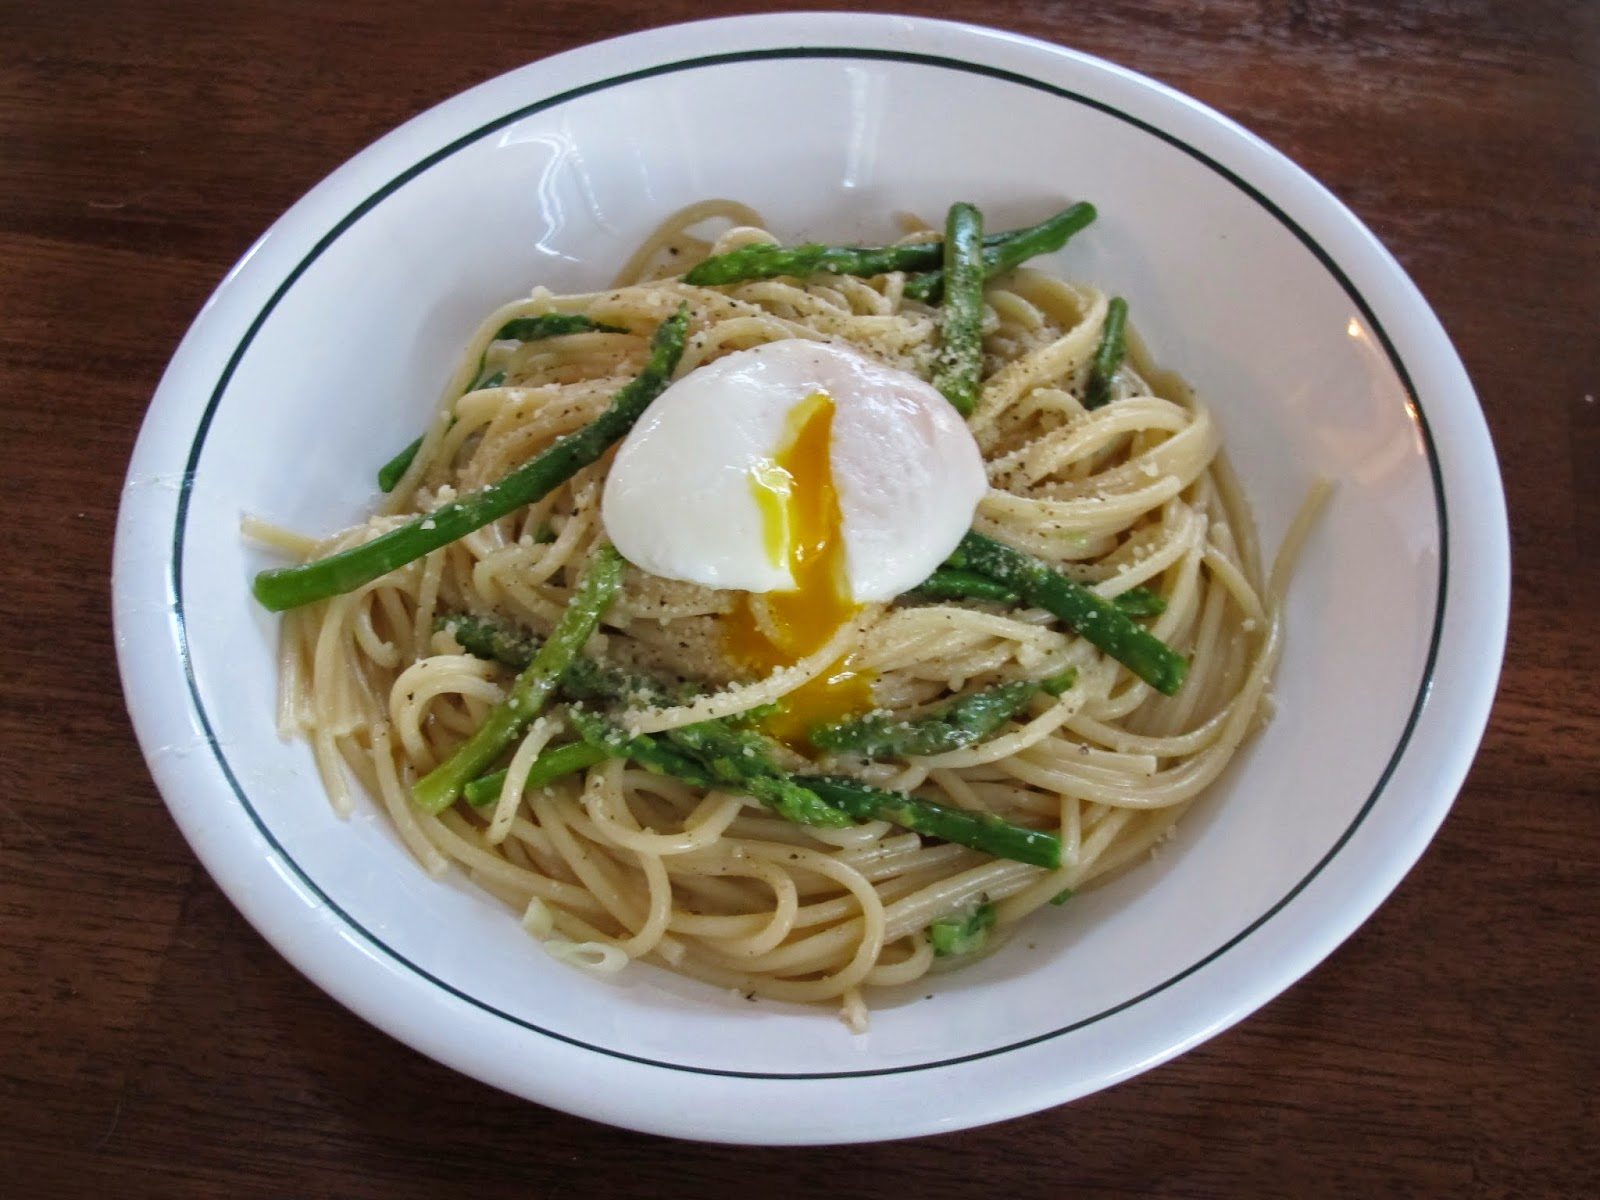 Spaghetti with Asparagus and Poached Egg